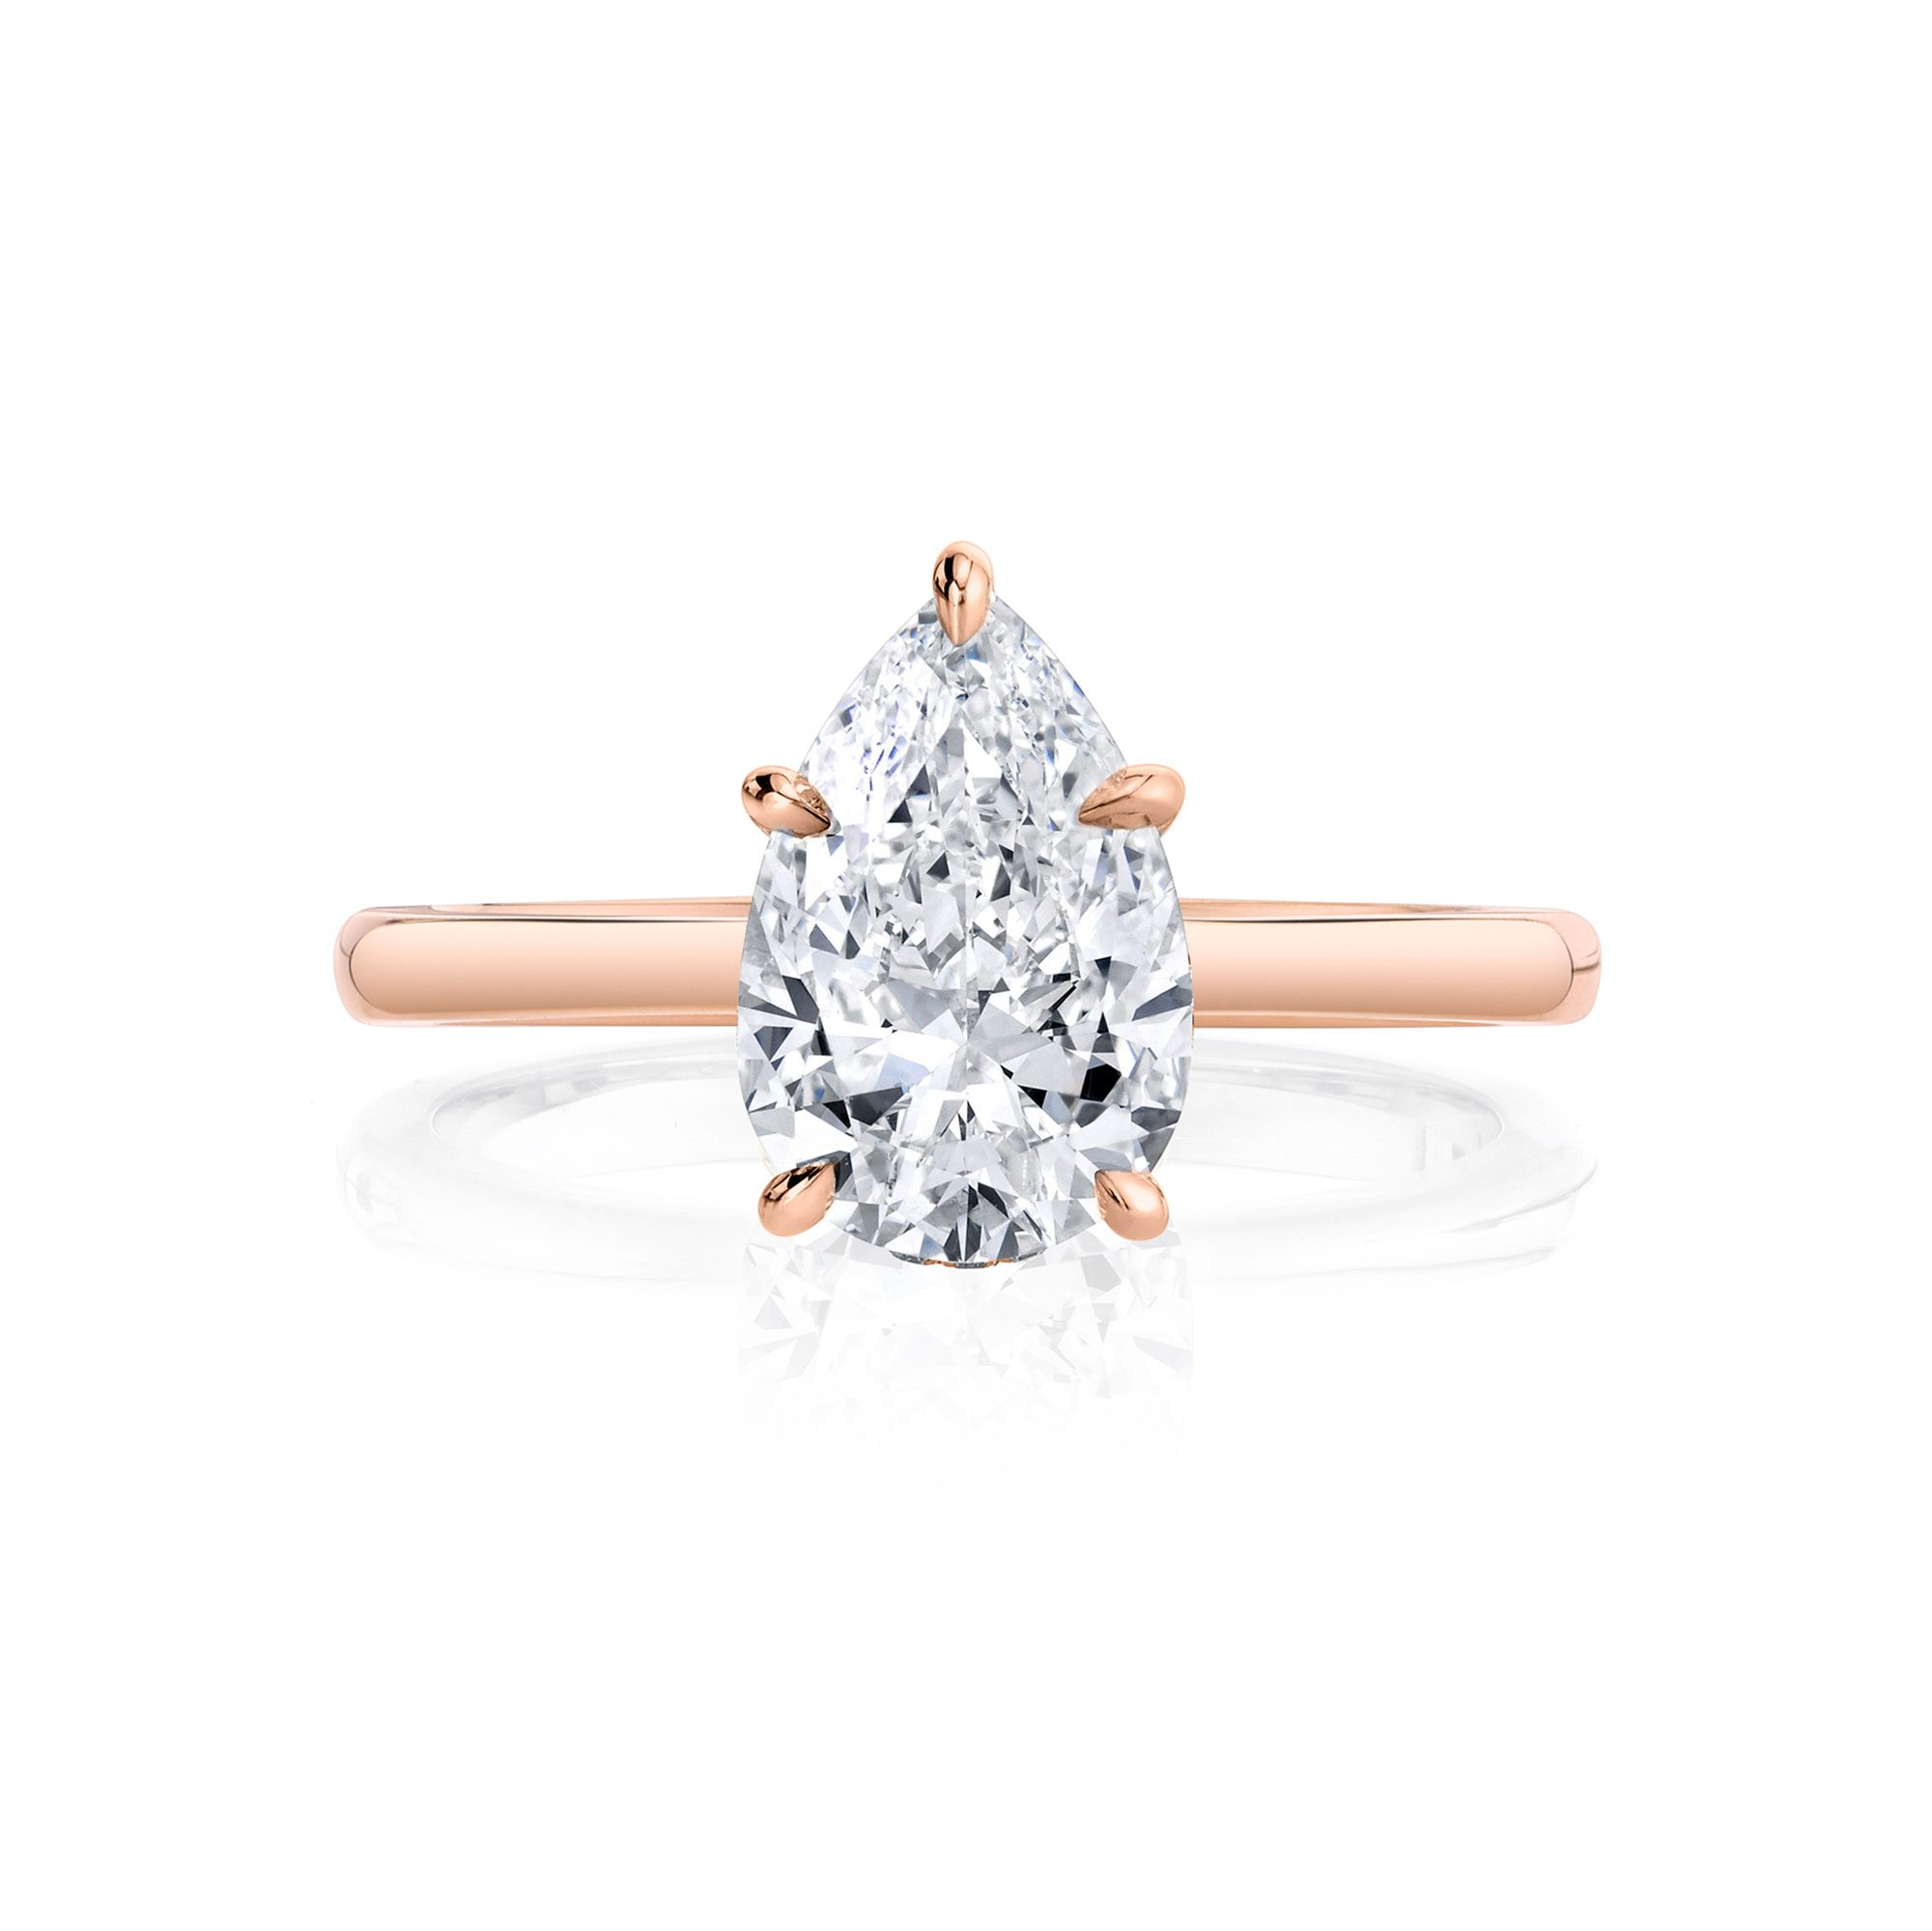 Colette Solitaire Pear Cut Lab Grown Diamond Engagement Ring in 18k Rose Gold solid band.